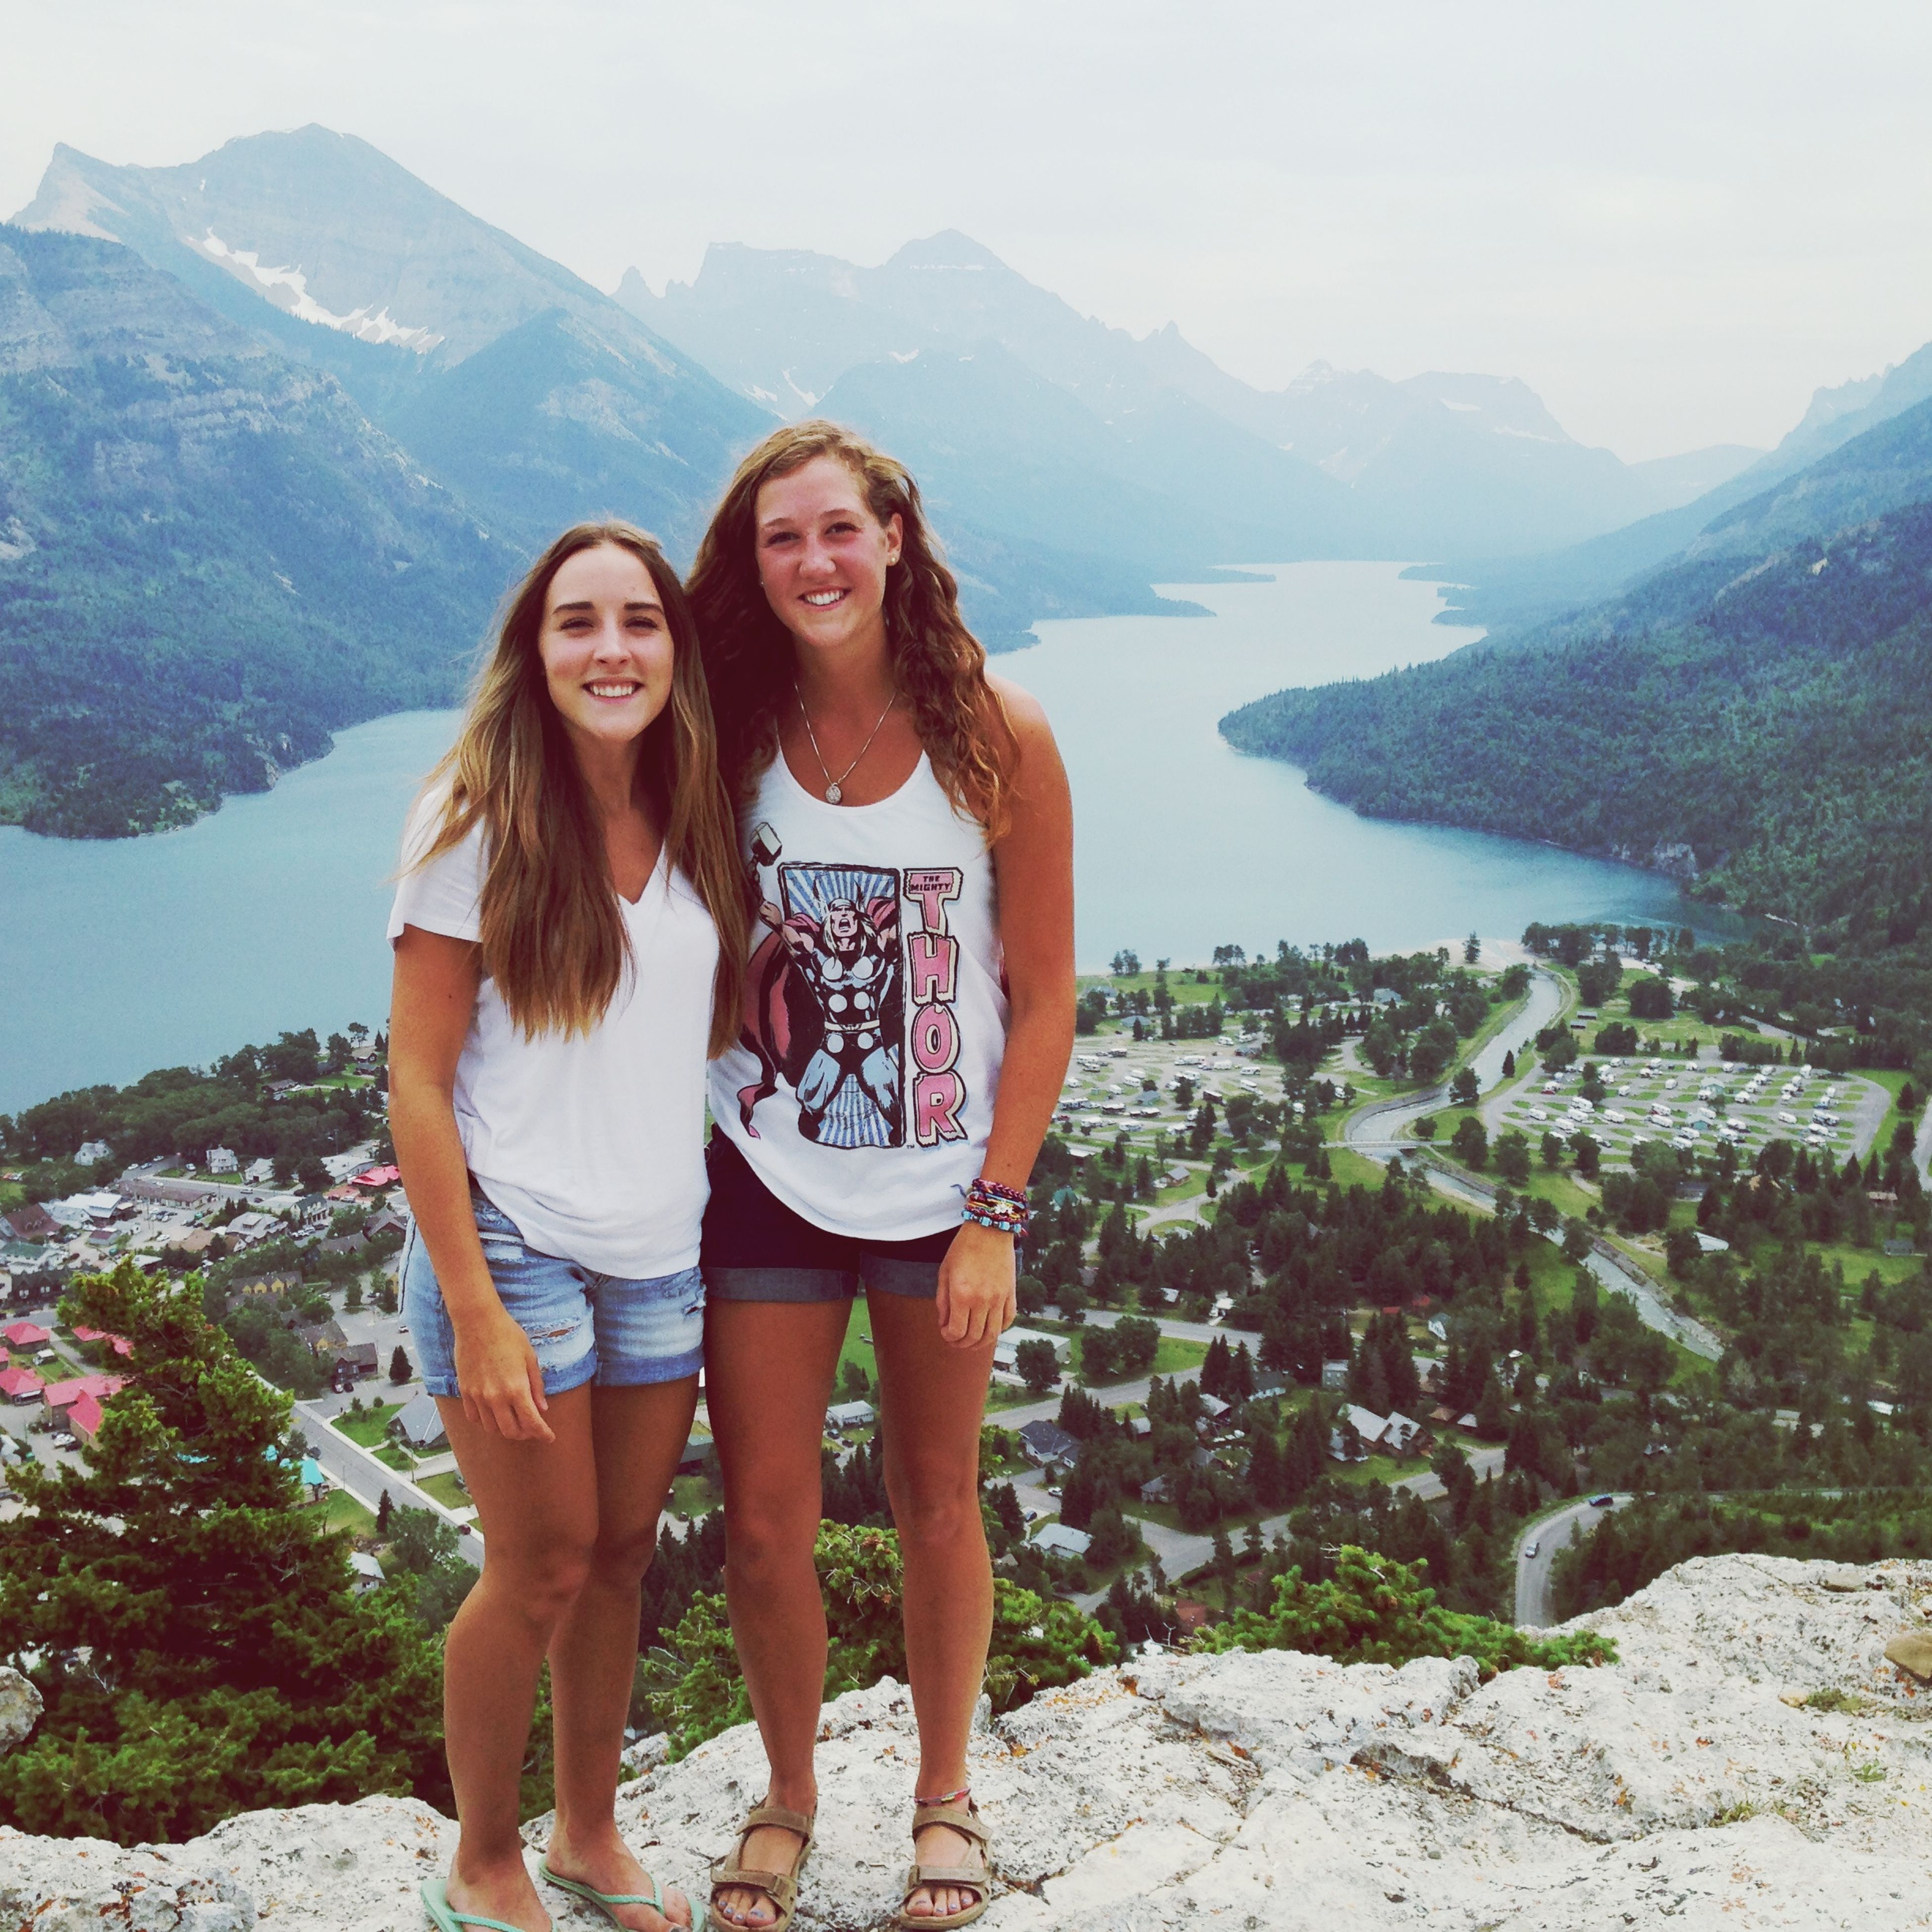 young adult, lifestyles, young women, person, mountain, leisure activity, casual clothing, standing, smiling, portrait, looking at camera, three quarter length, vacations, front view, full length, water, happiness, mountain range